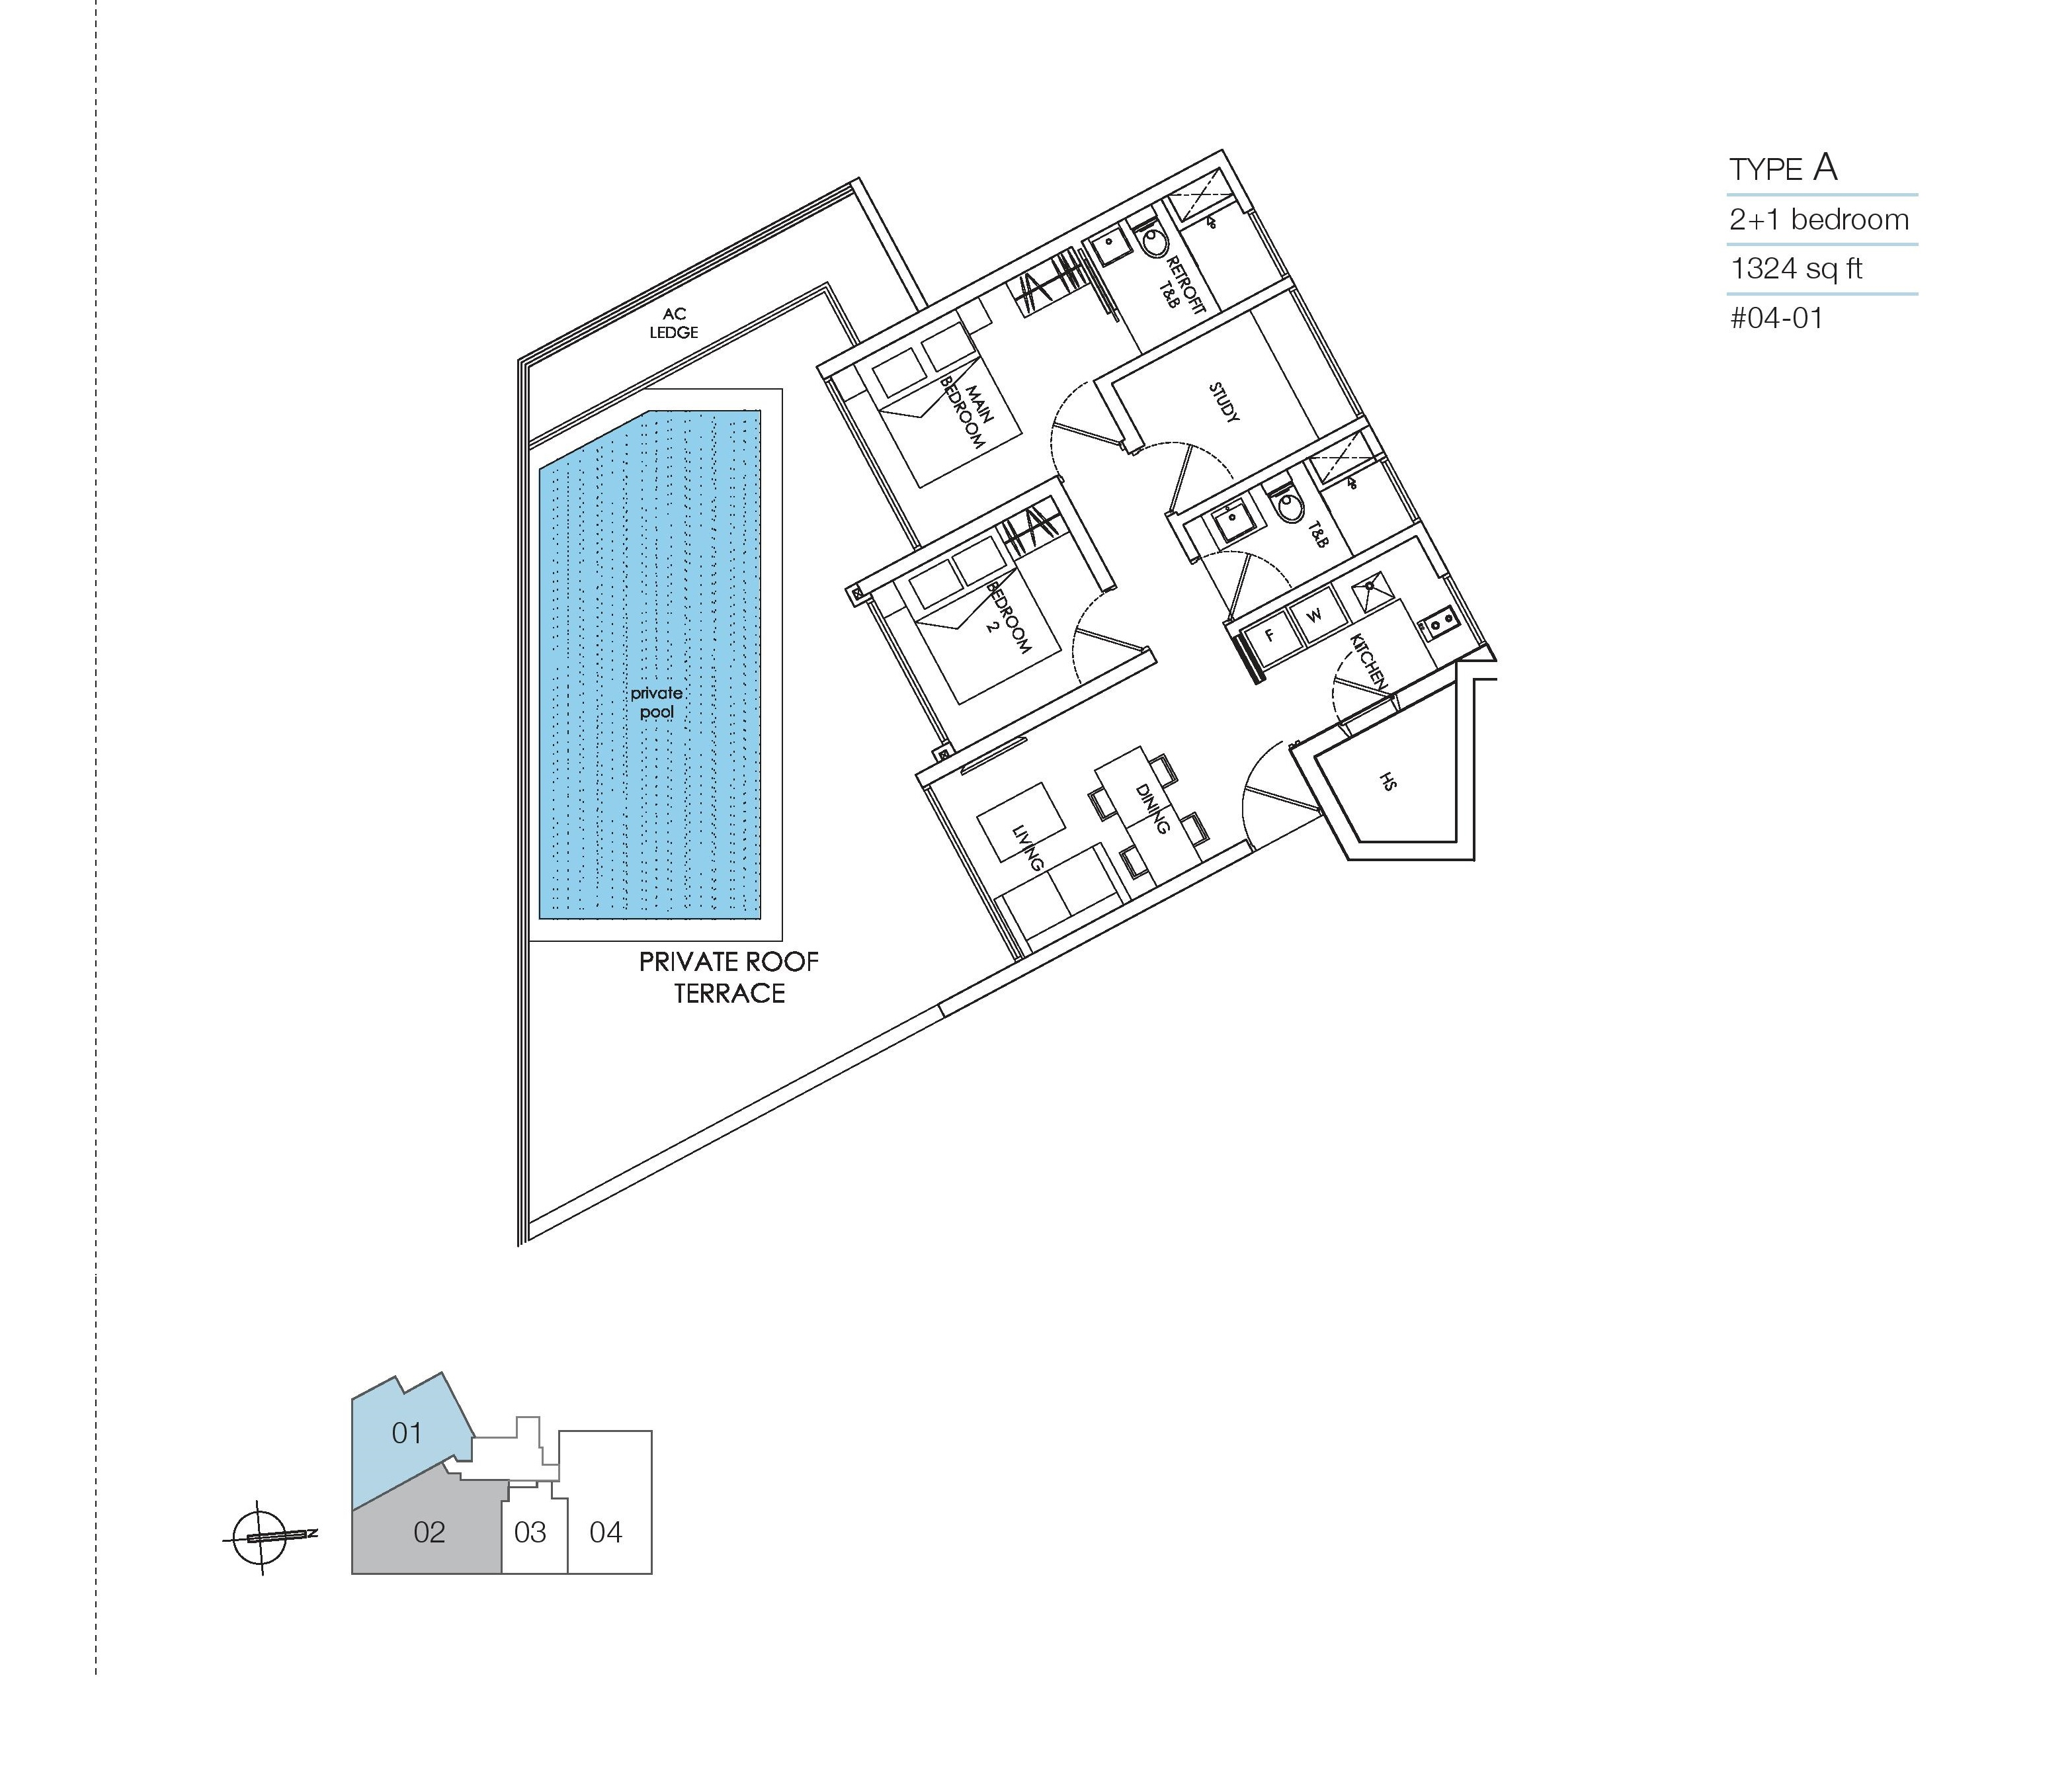 8M Residences 2 Bedroom + Study Roof Type A Floor Plans